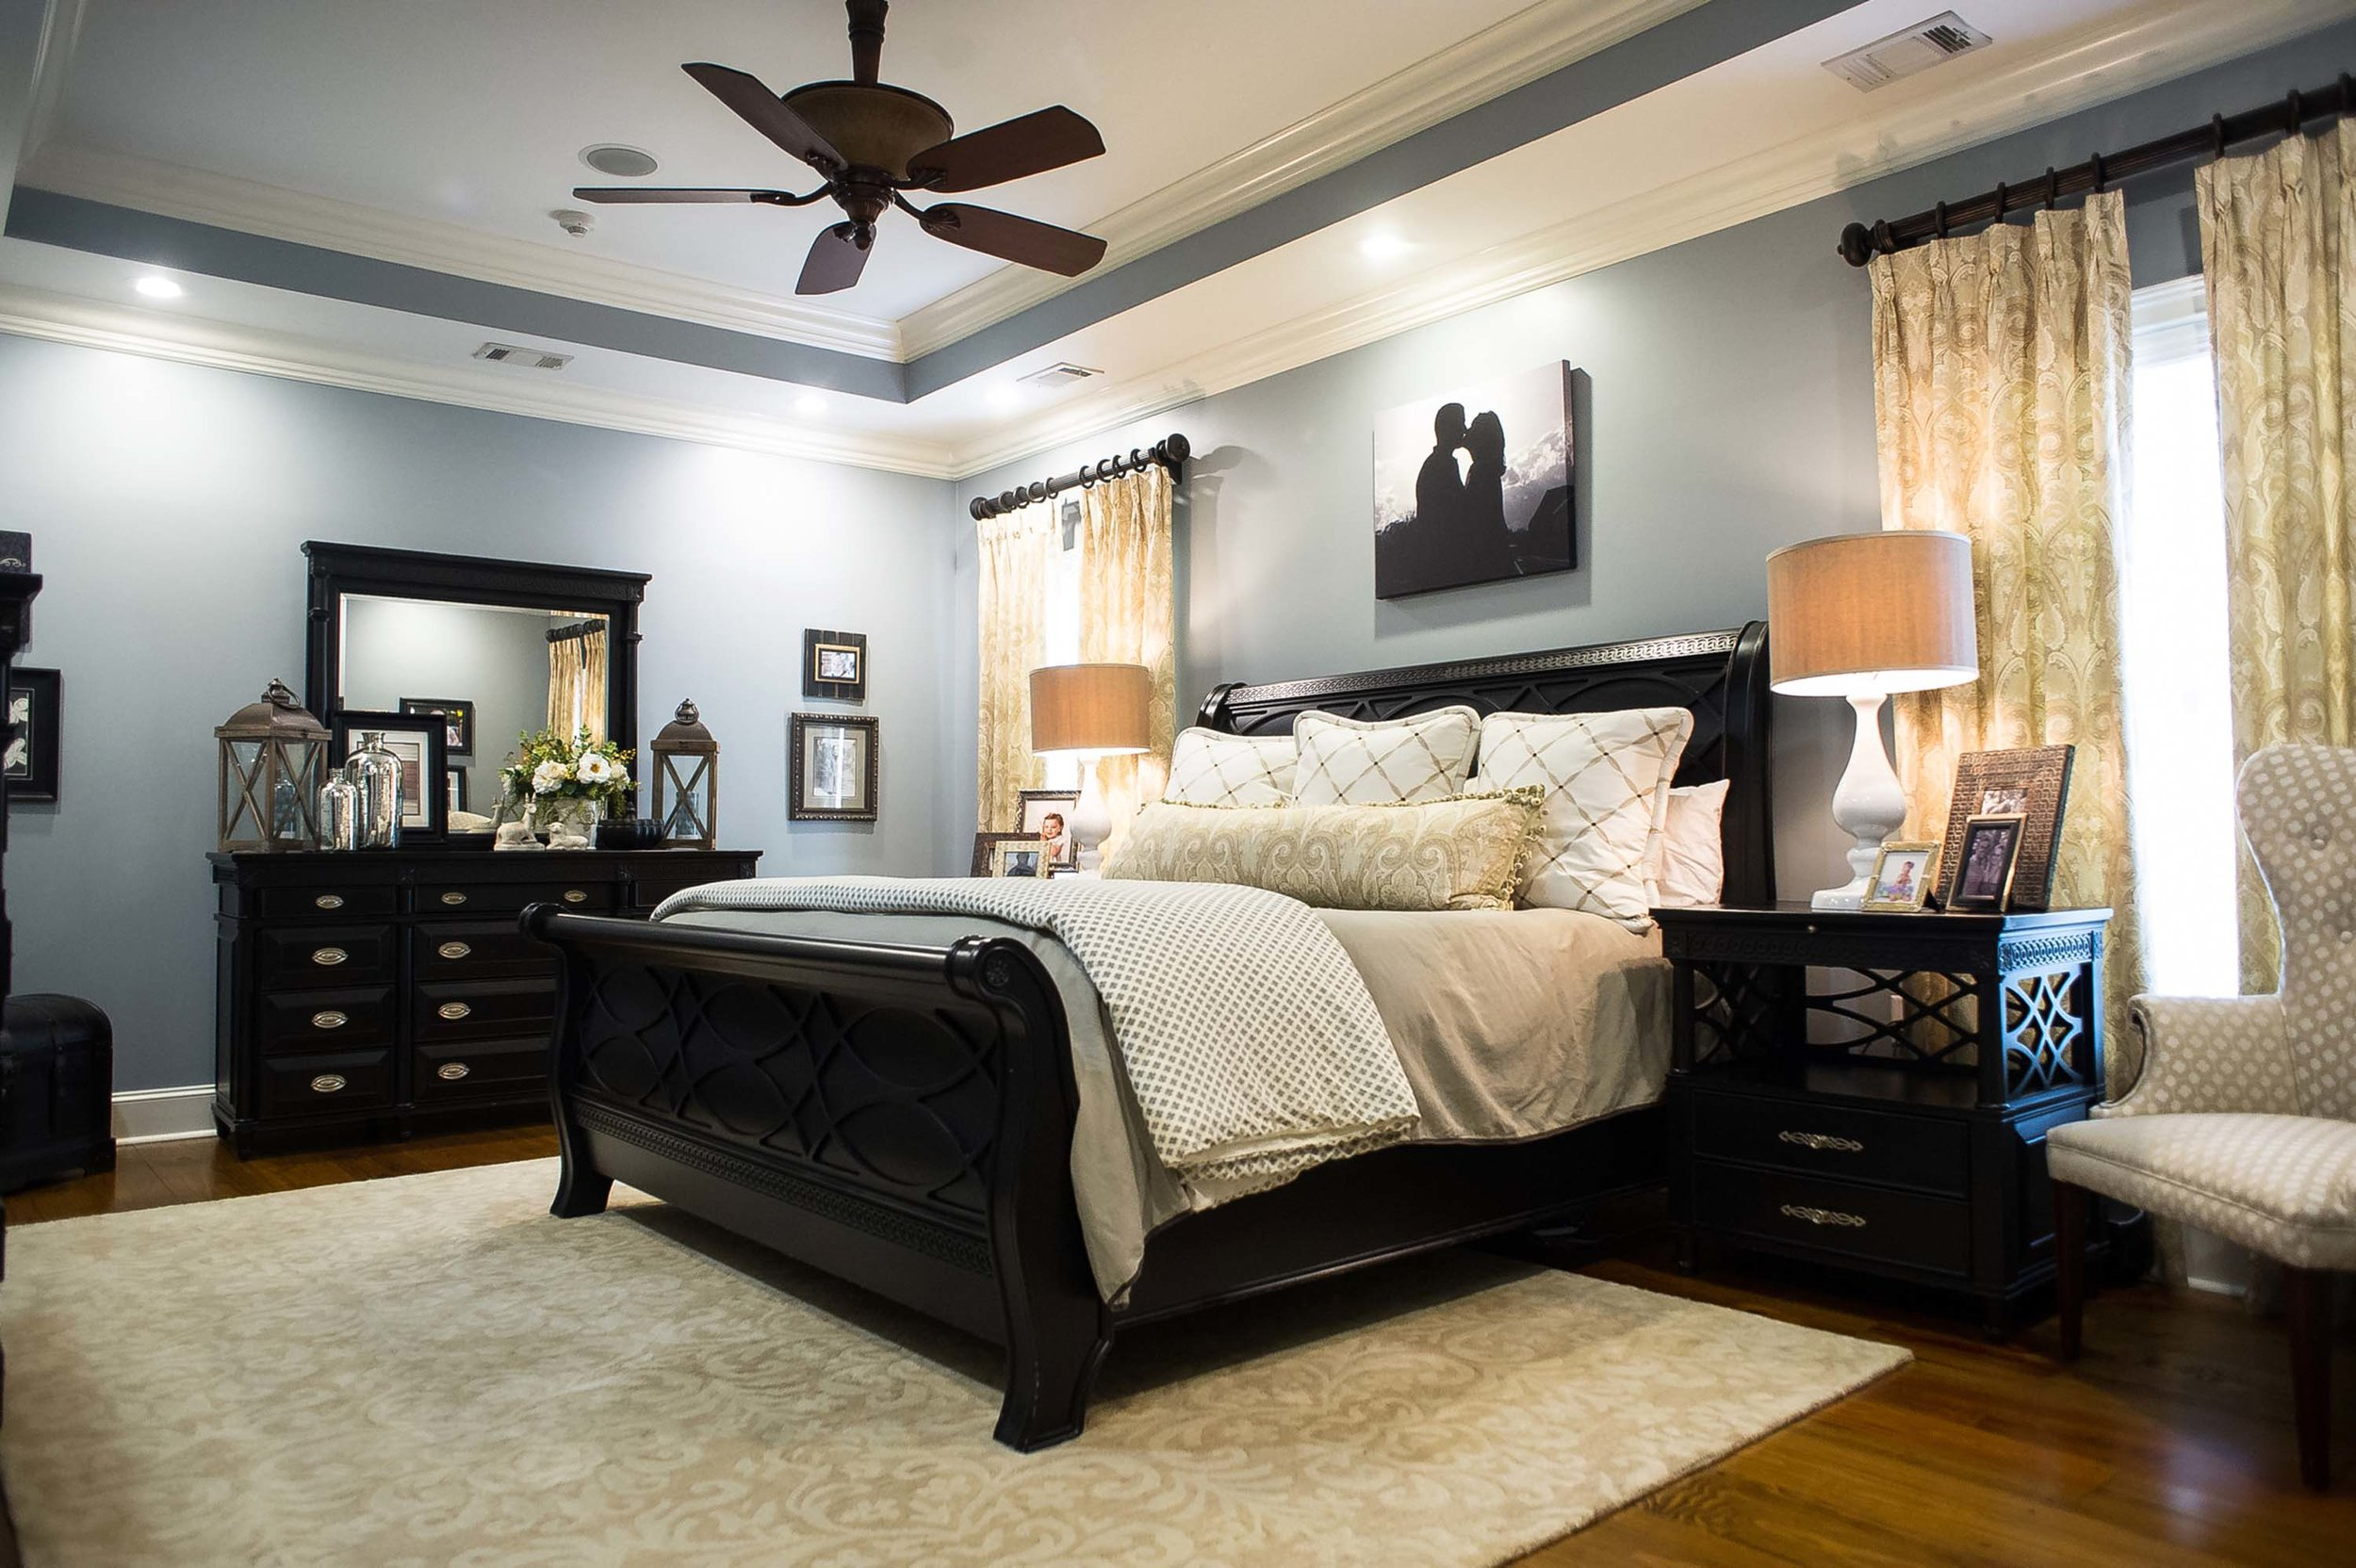 Master Bedroom with Custom Bedding, Large Area Rug and Window Treatments